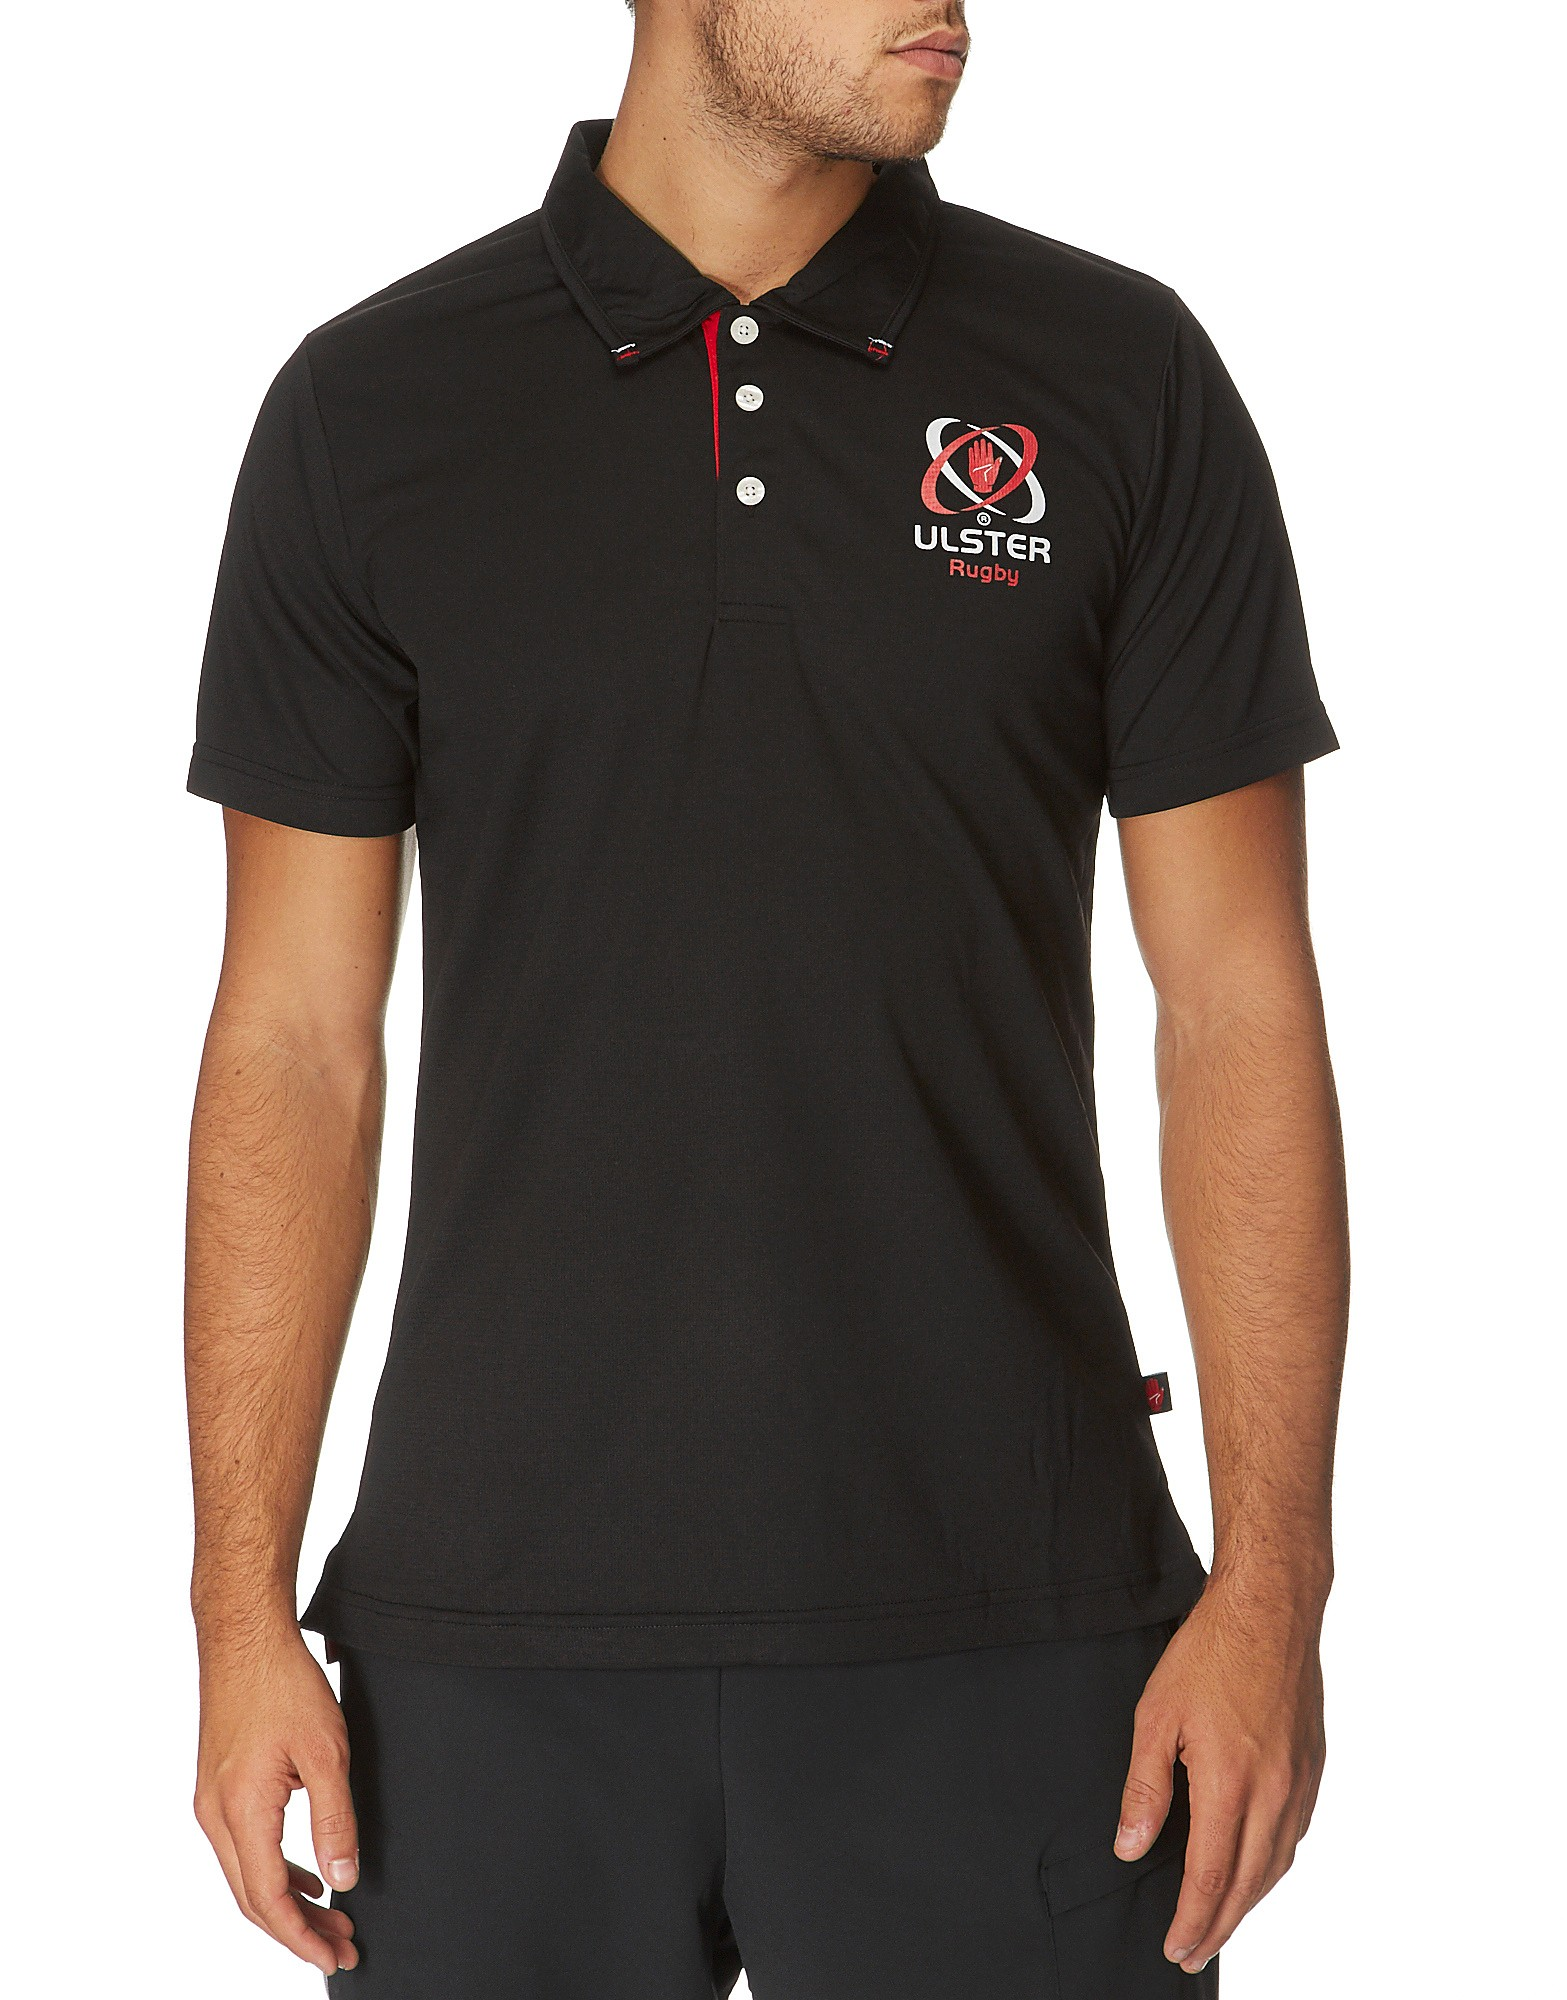 Kukri Ulster Performance Polo Shirt